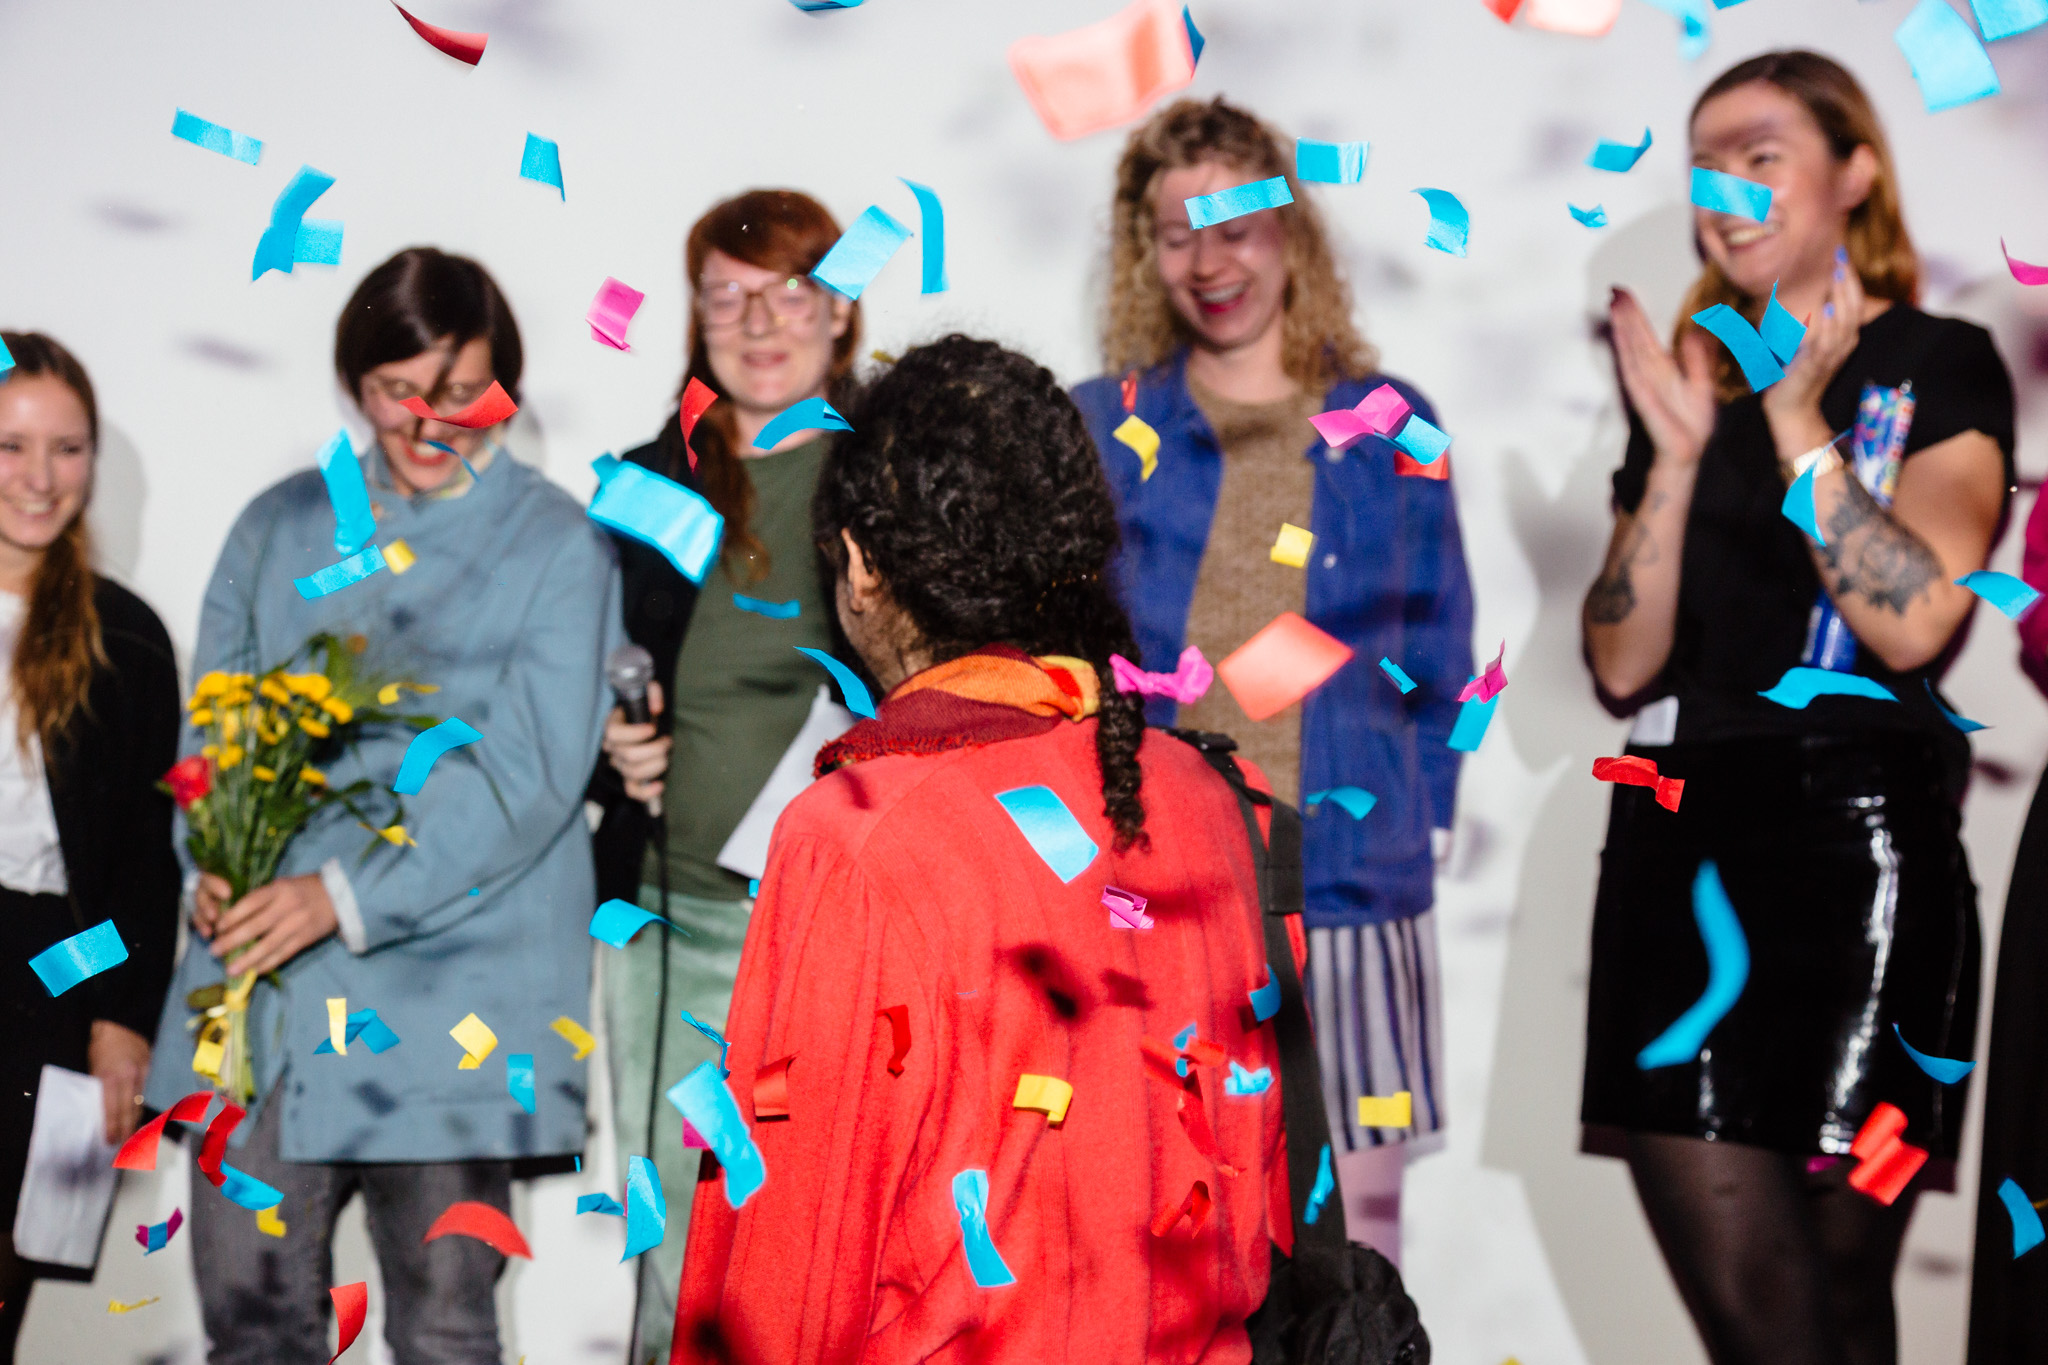 <p><b>Berlin Art Prize<br /> </b><b>Award Ceremony at midnight<br /> </b>The winners were announced live for the first time at a midnight awards ceremony, photo by André Wunstorf</p>